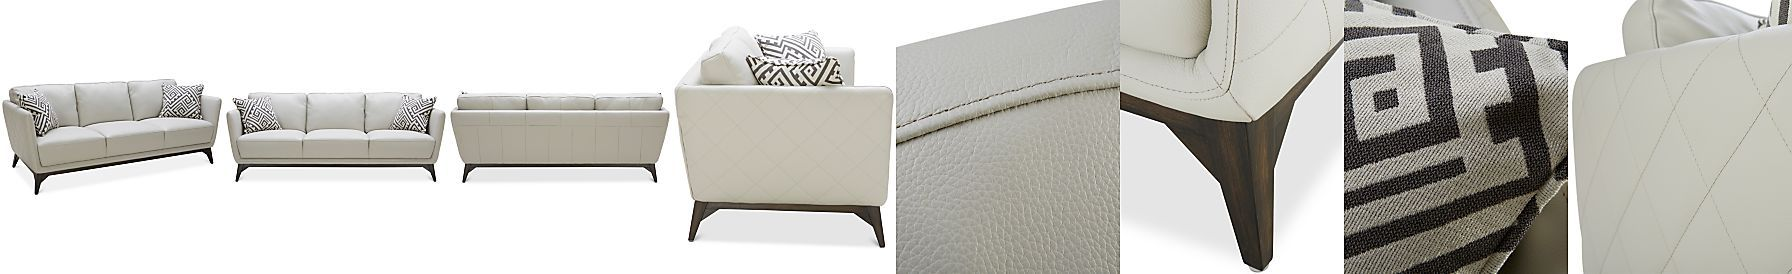 Kourtney Quilted Side Leather Sofa Kourtney Quilted